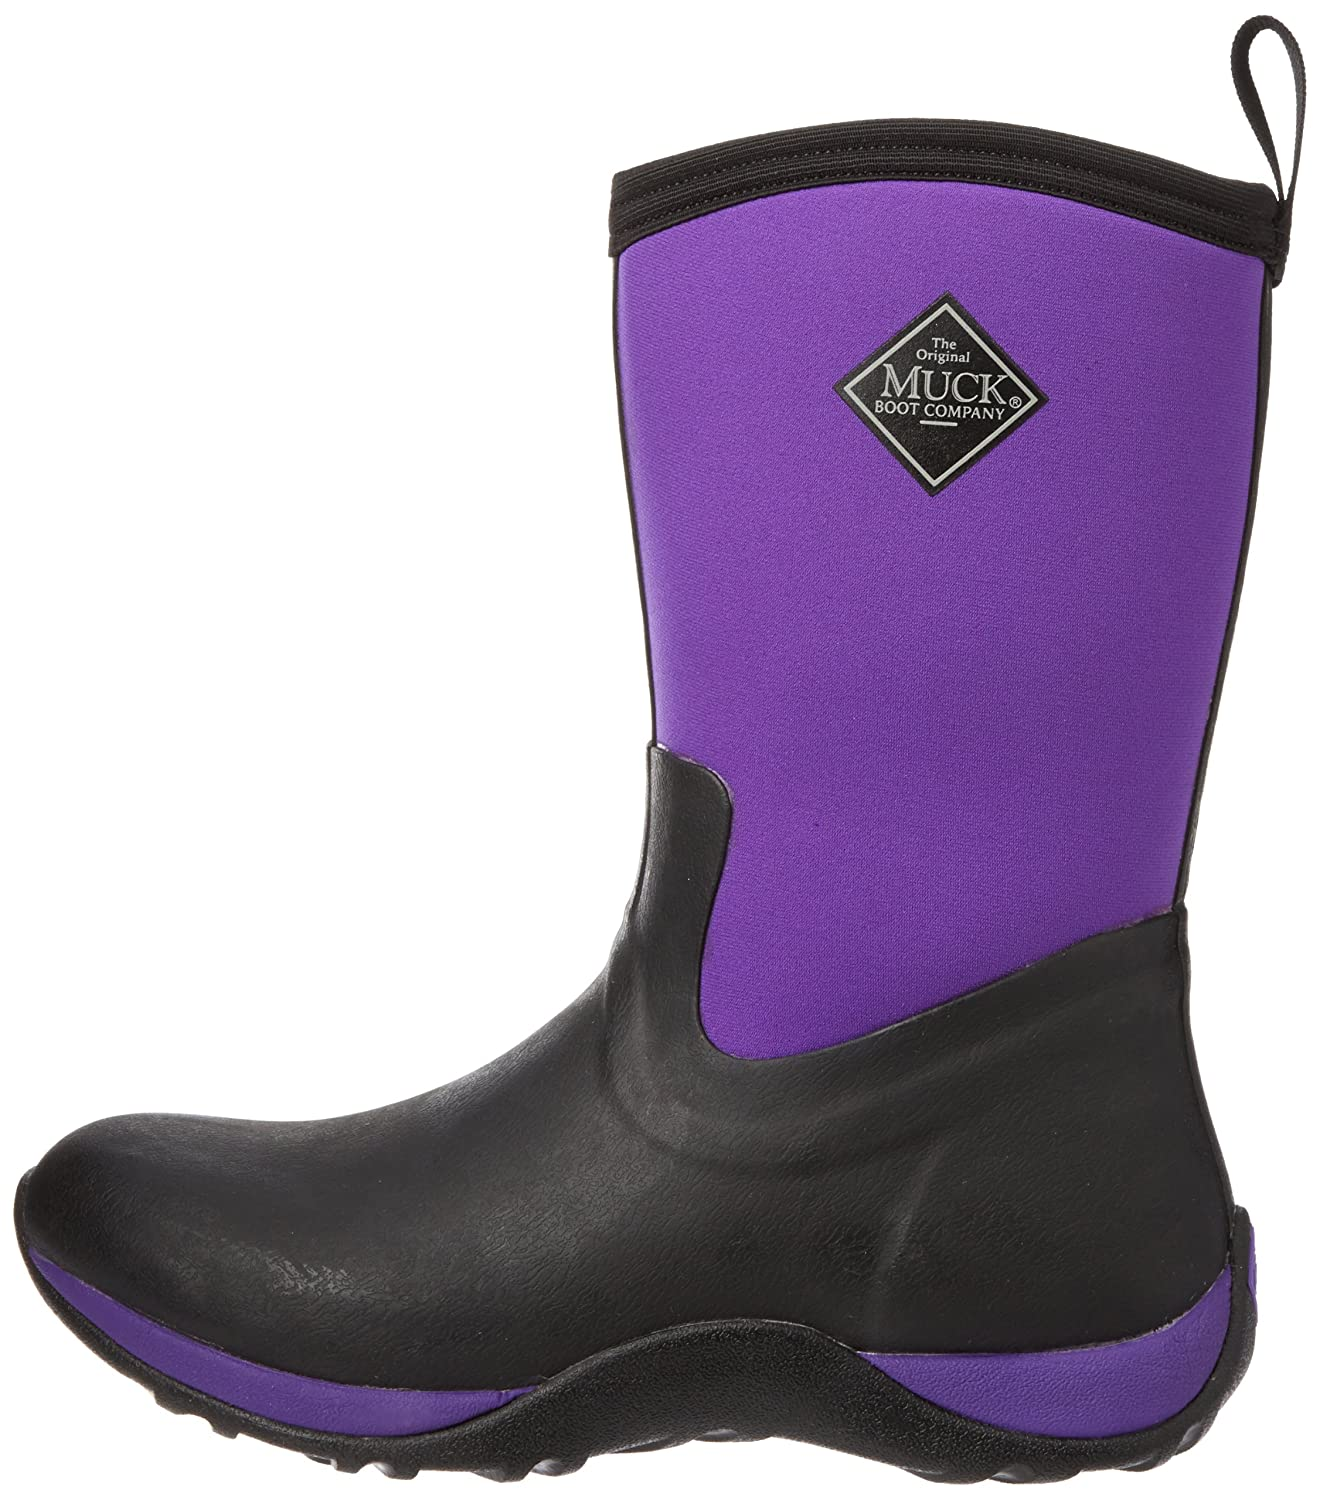 Muck Boot Company Women's Arctic Weekend Boot B00BN61CLG 10 B(M) US|Black/Purple